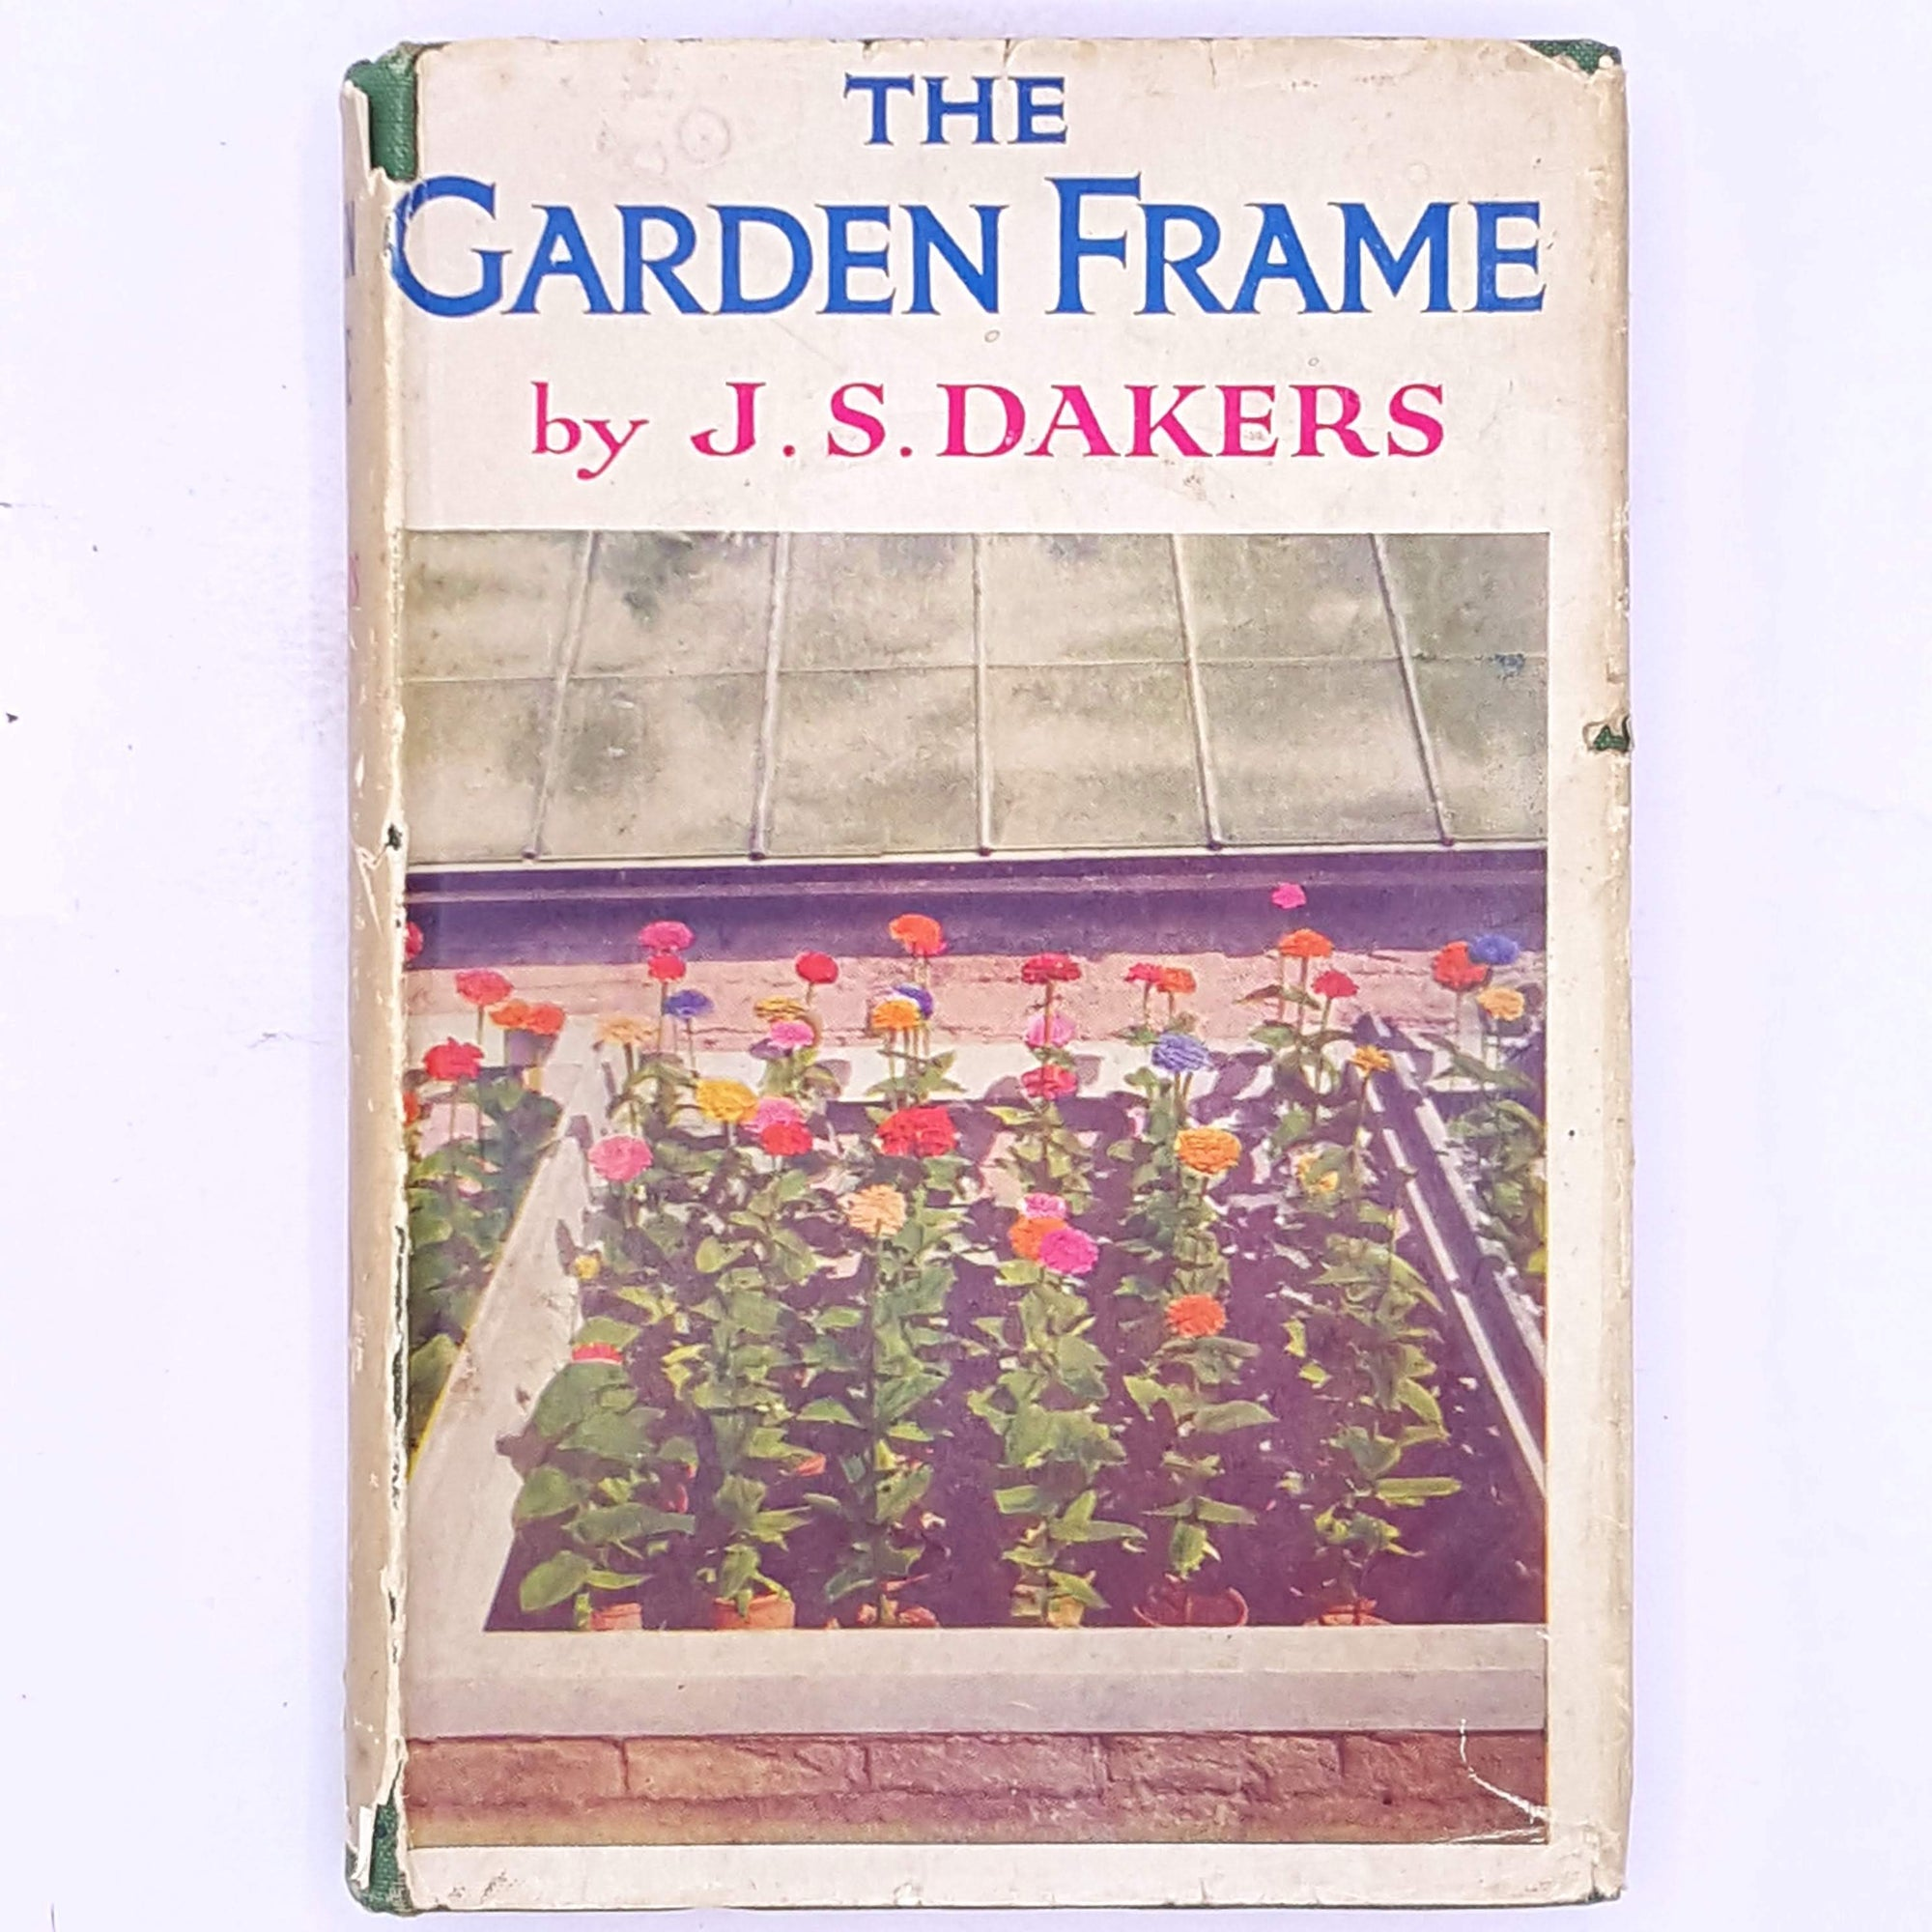 The Garden Frame by J.S. Dakers